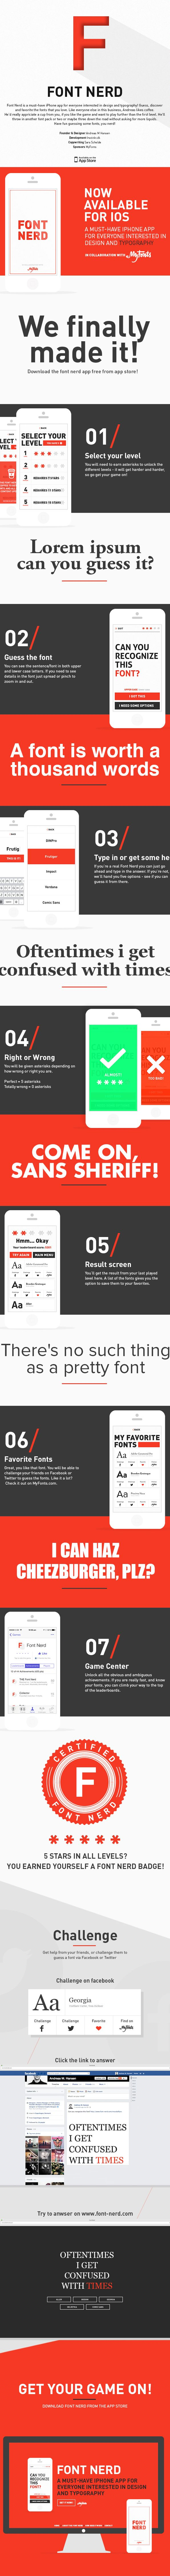 New game for iPhones that actually allows you to study what fonts are what. Font Nerd for iOS by Andreas M Hansen, via Behance